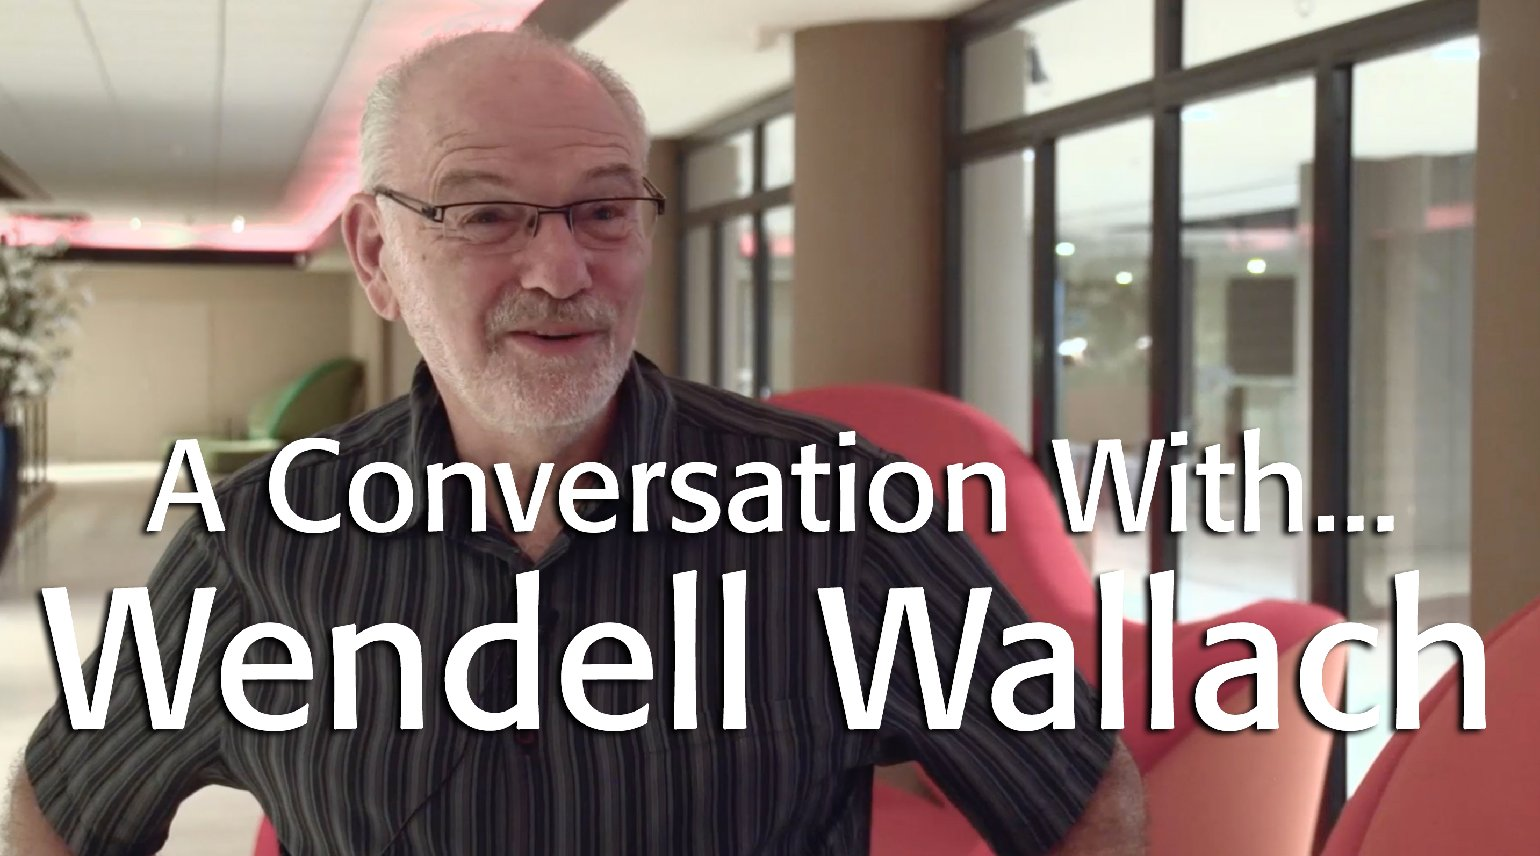 A Conversation with... Wendell Wallach: IEEE TechEthics